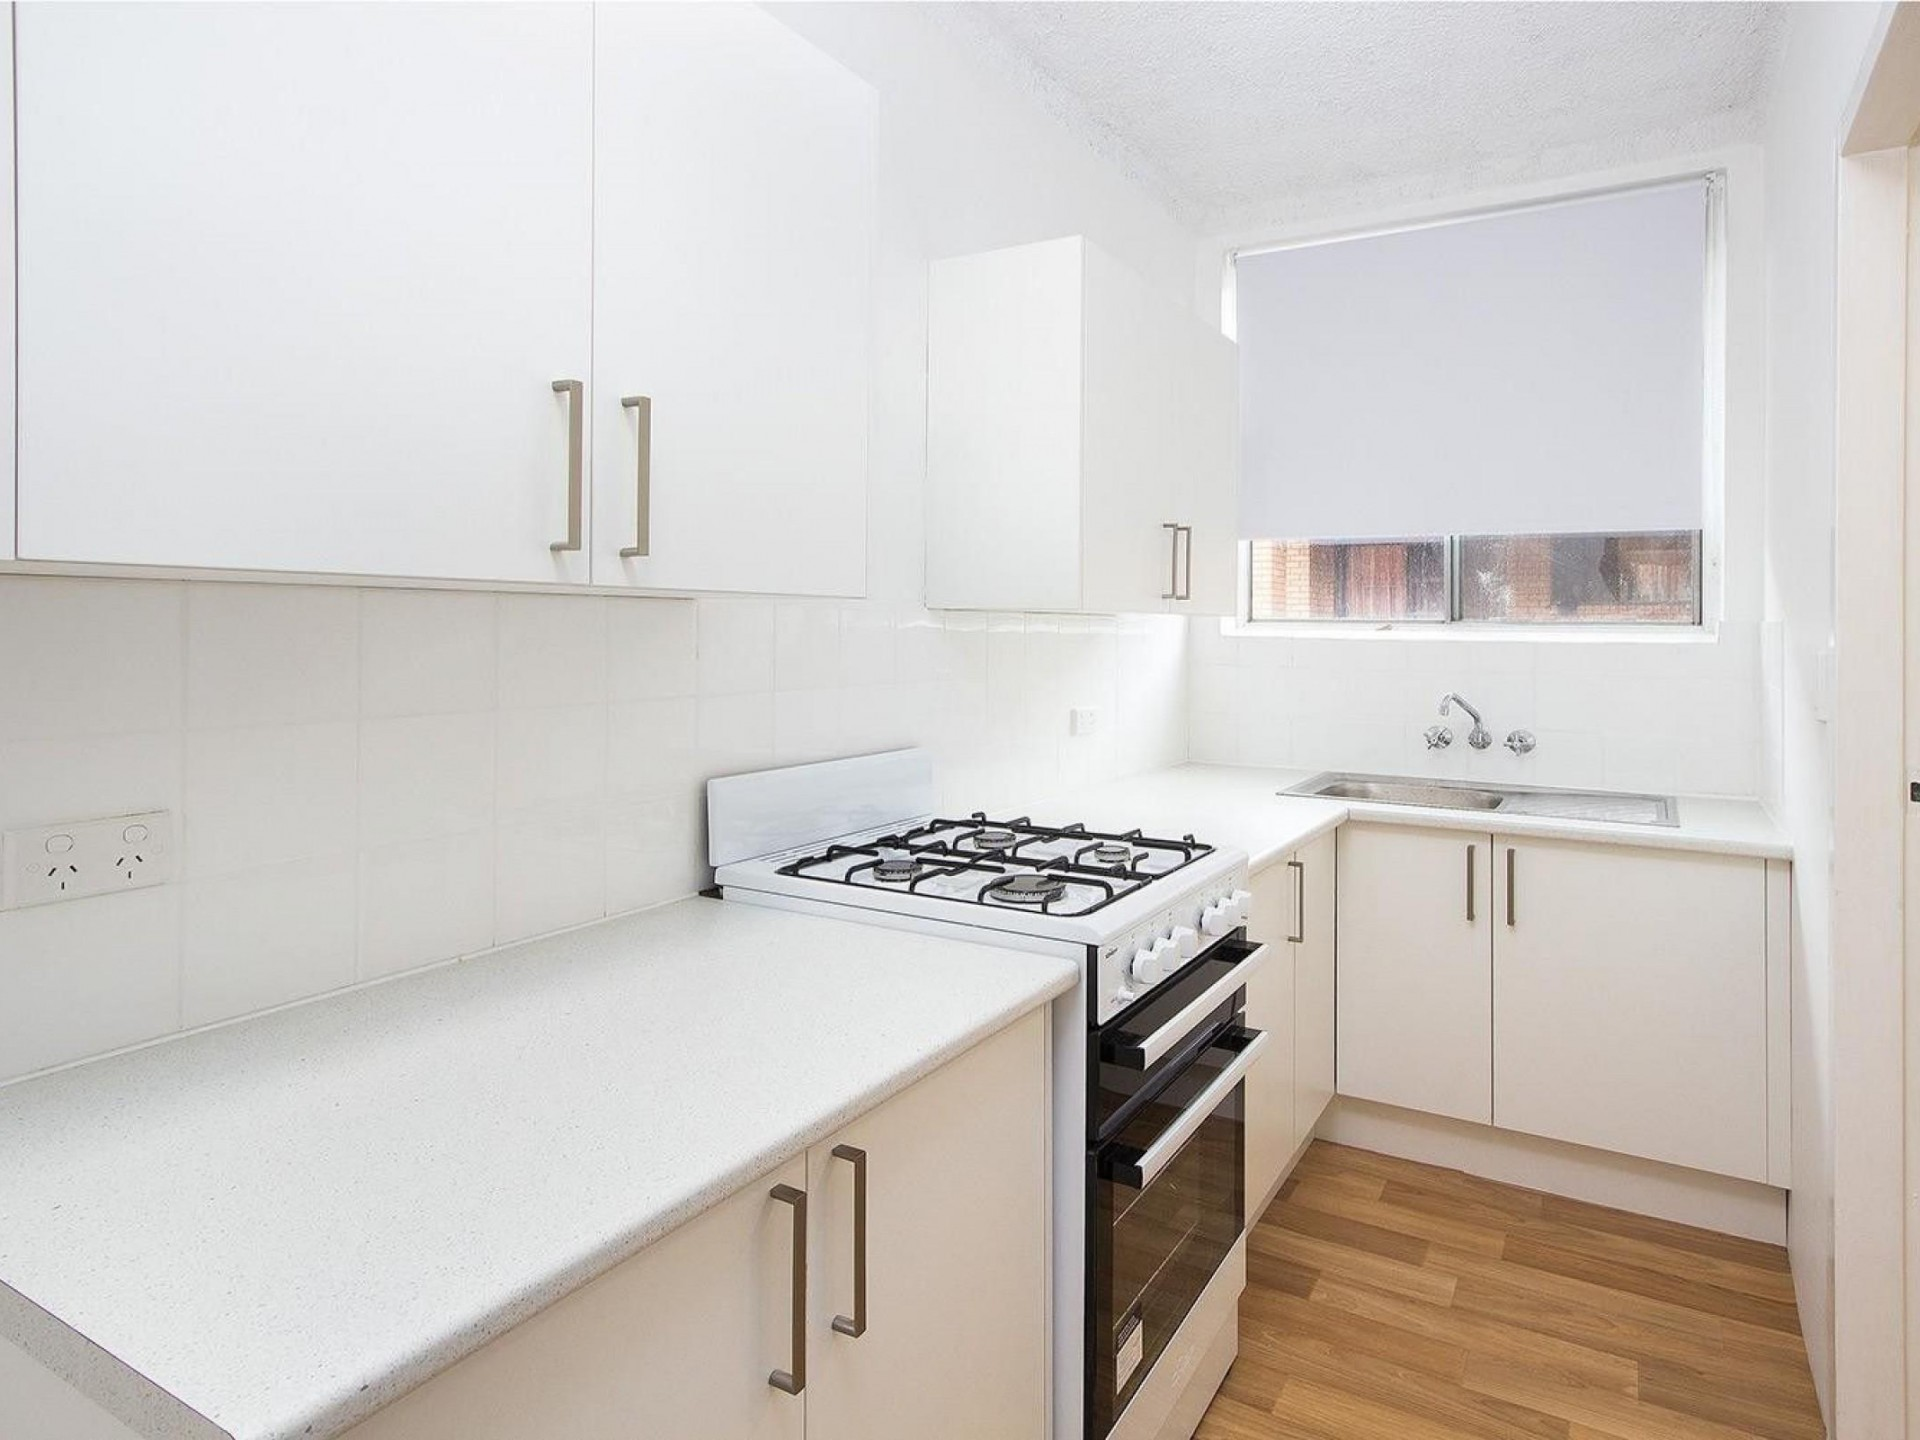 Conveniently located 2 bedroom Unit - very close to train station!